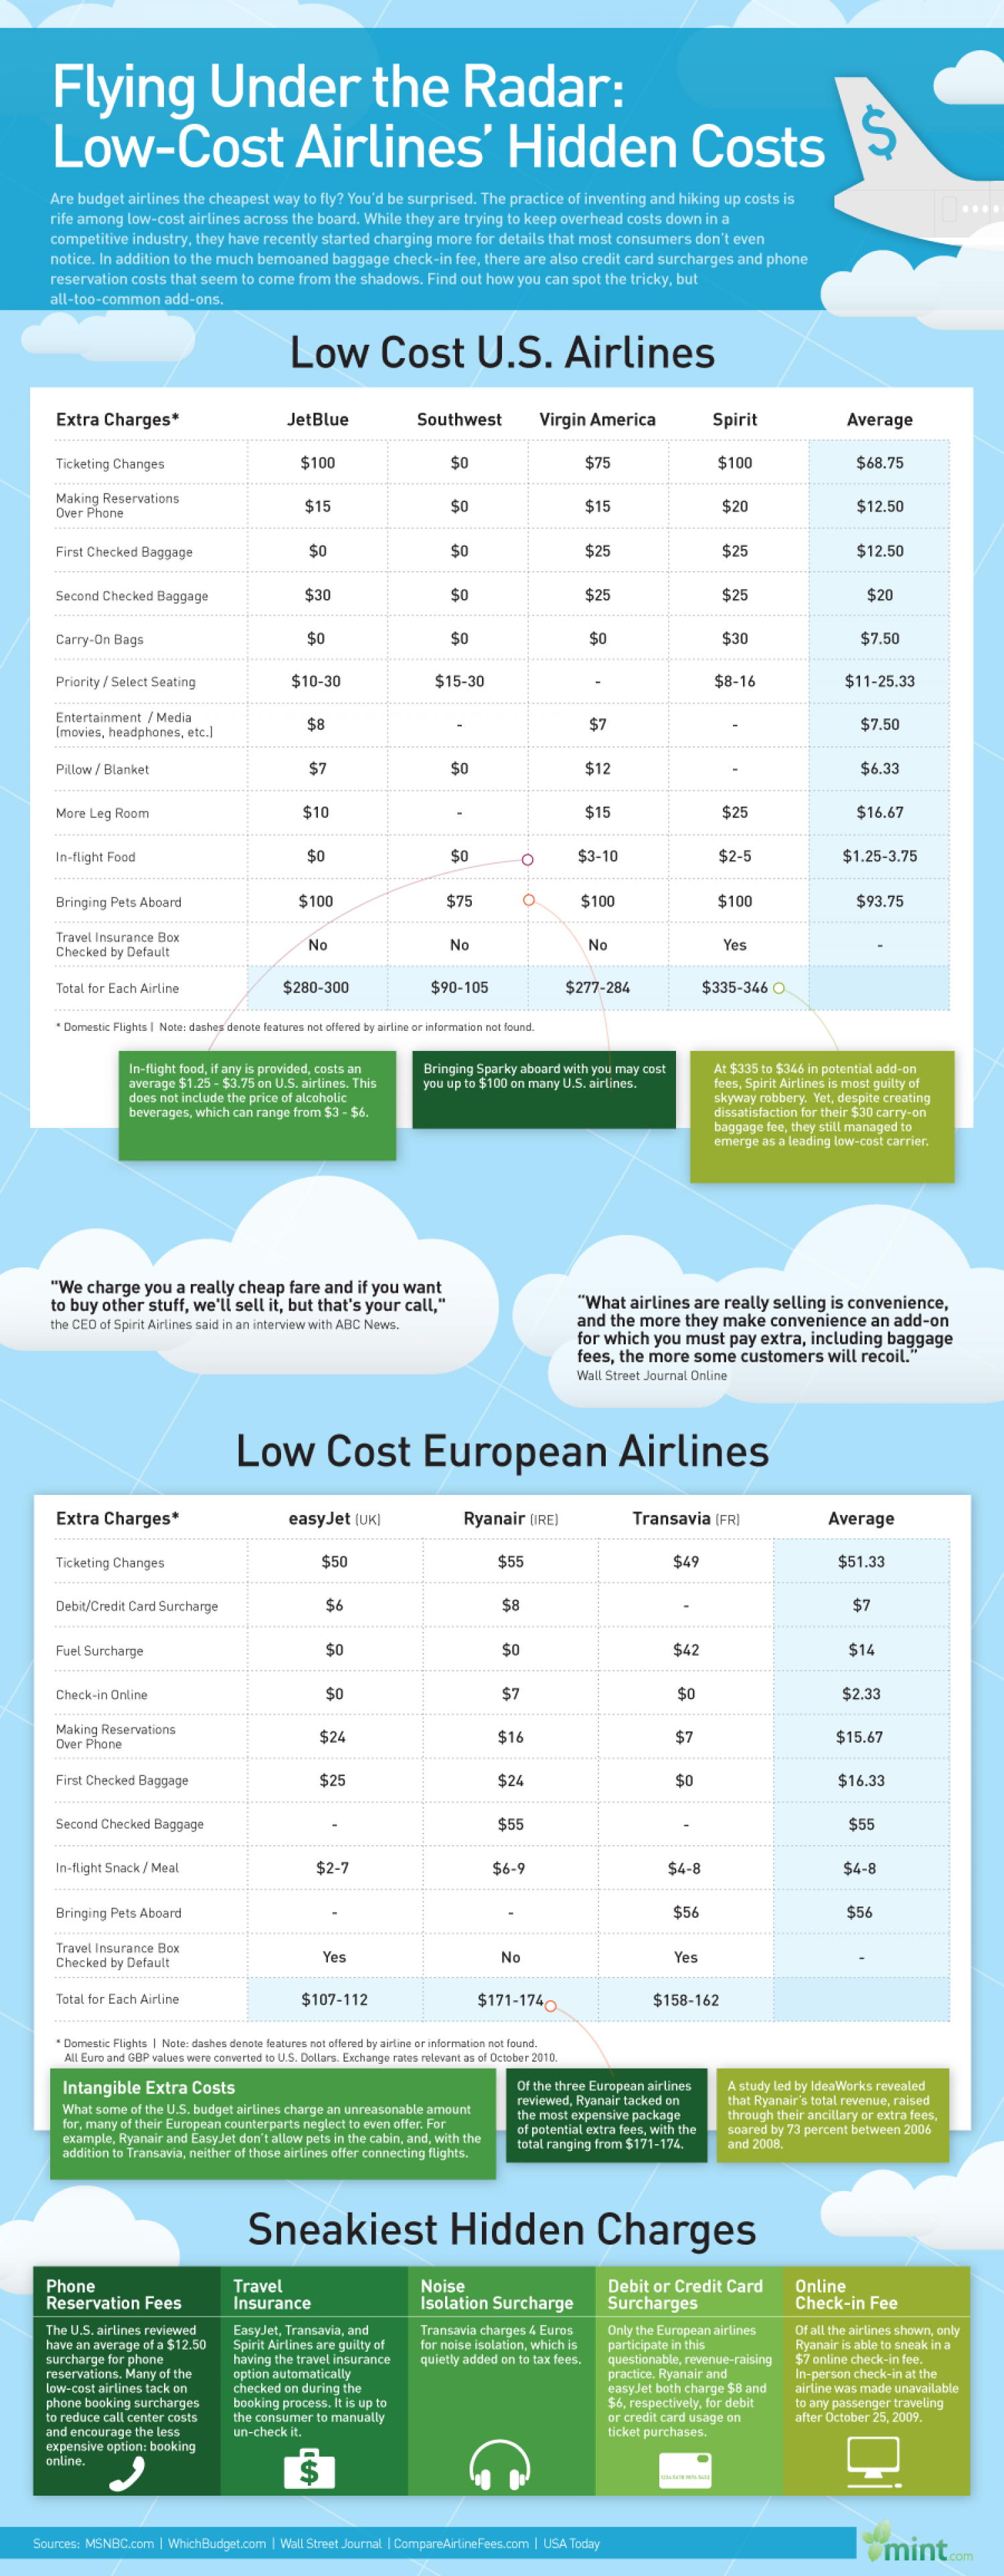 Flying Under The Radar: Low-Cost Airlines' Hidden Costs Infographic